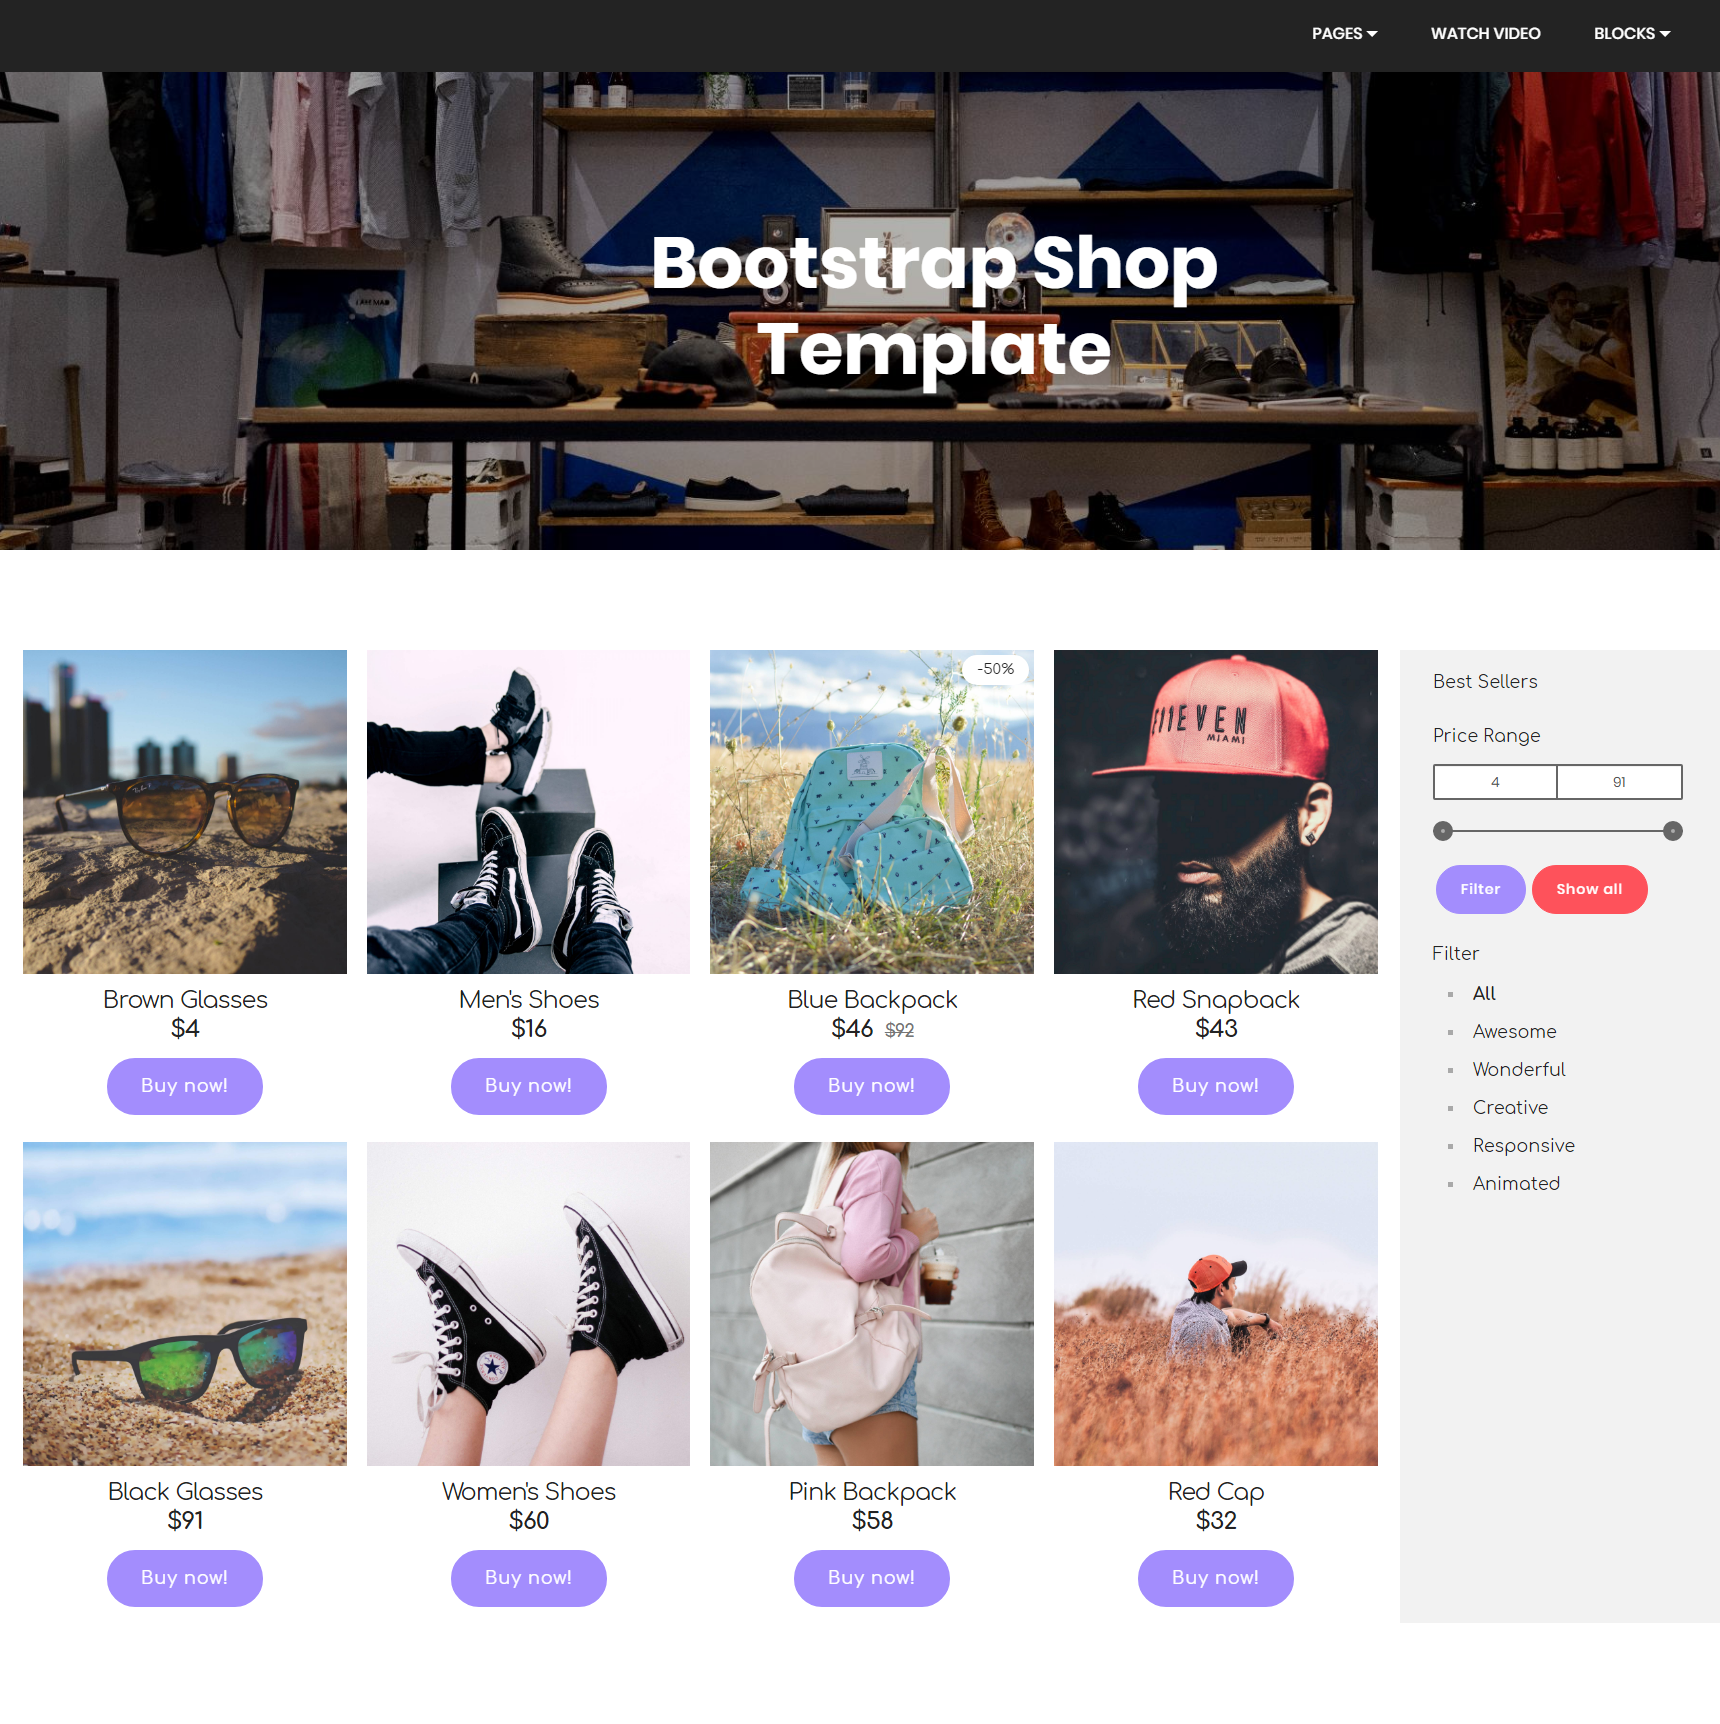 Free Download Bootstrap Shop Templates